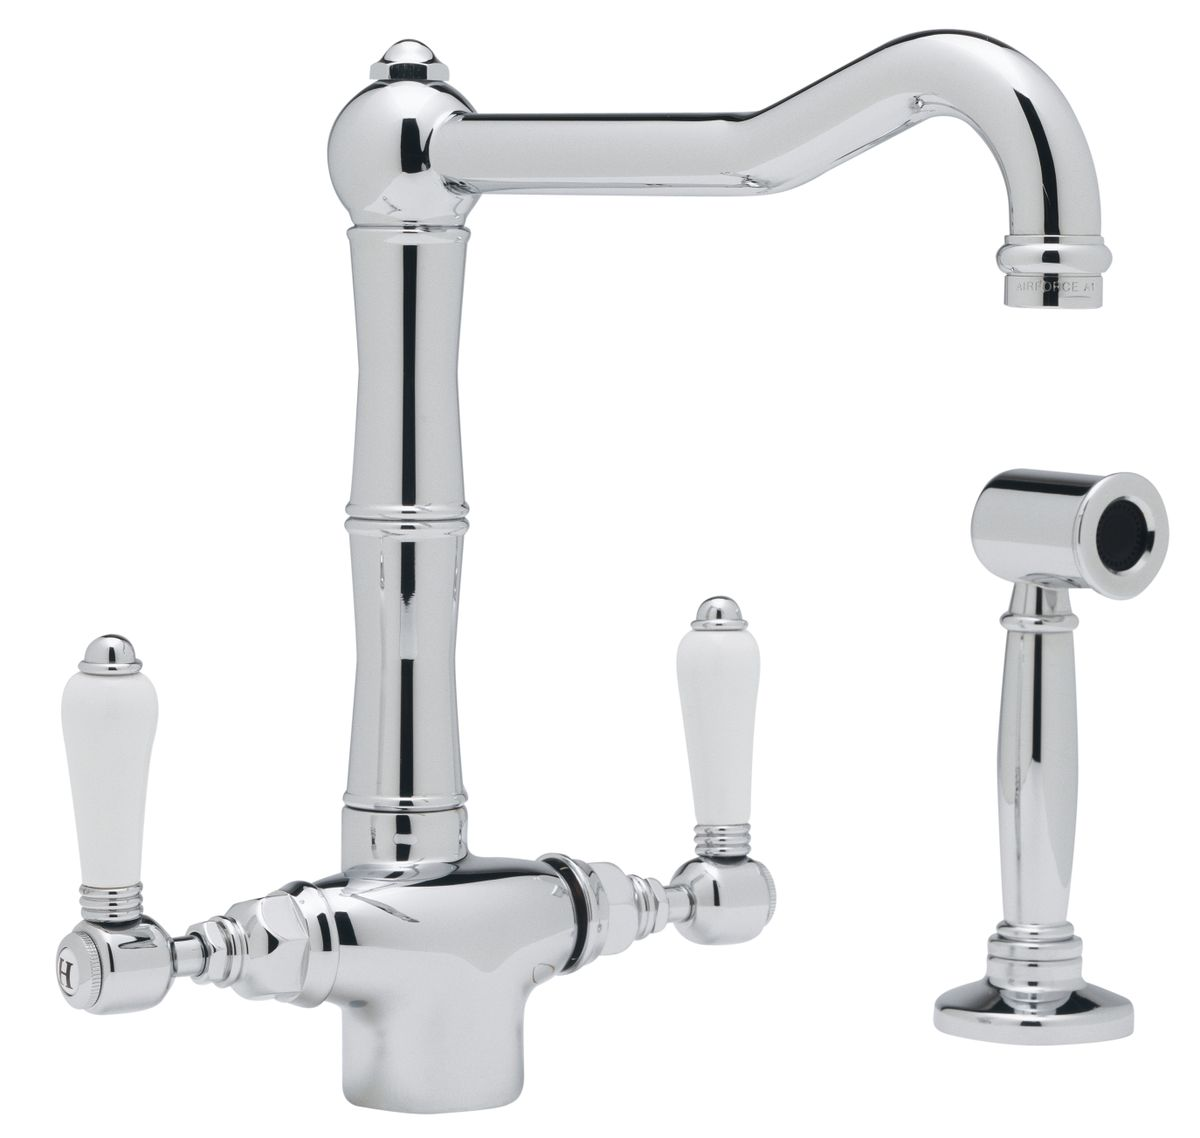 rohl country kitchen faucet angled cabinets gallery faucets and fixtures pressroom